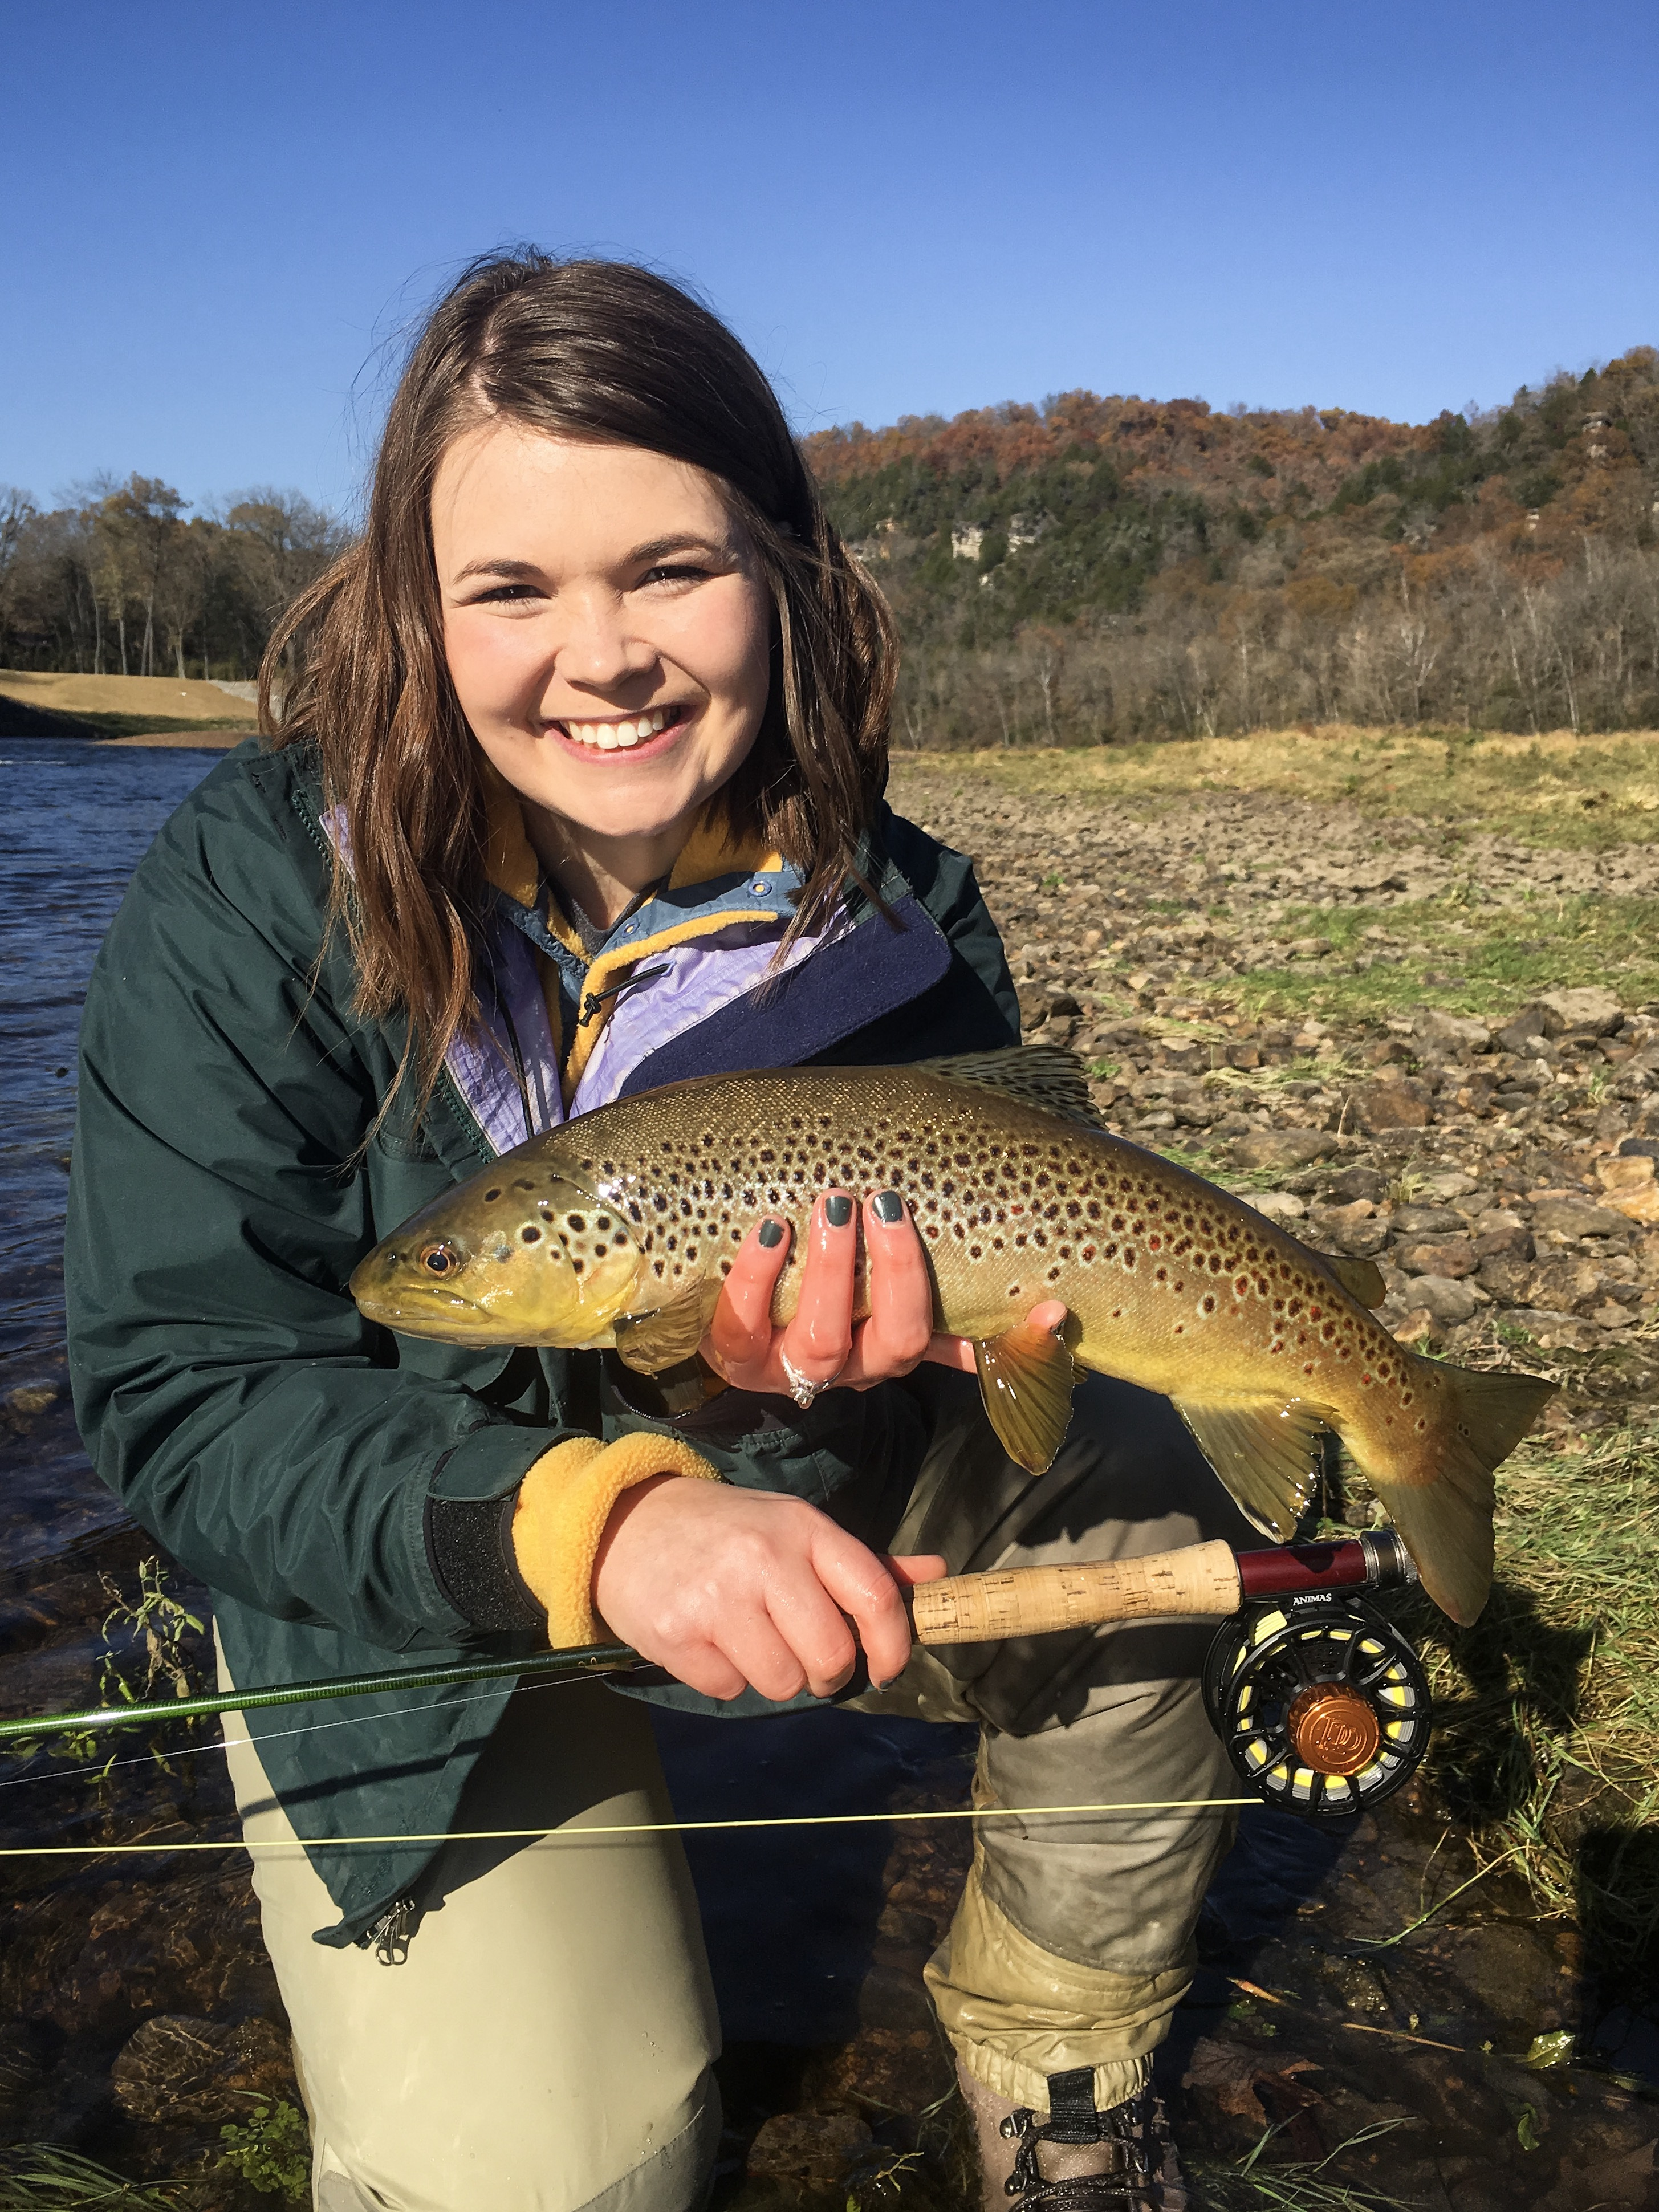 Dally's Fly Fishing Report 11/28/18